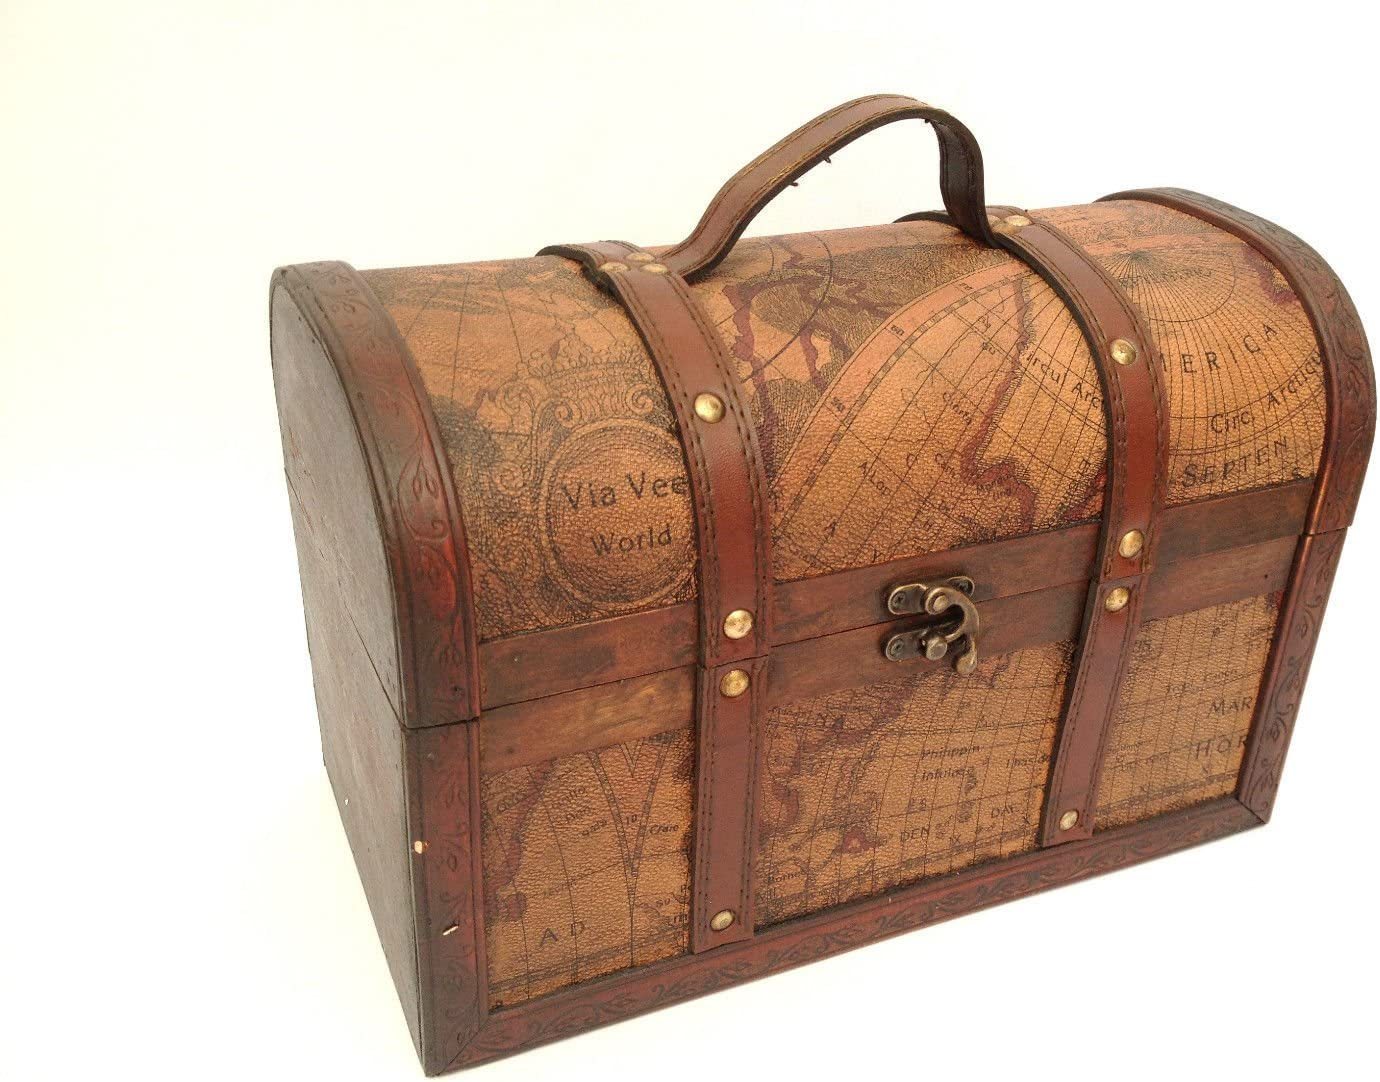 Treasure Chest Trinket Box Mens Jewellery Organiser Wooden Pirate Storage Box with Lid Metal Brass Leather Antique Vintage Style Trunk Map Themed